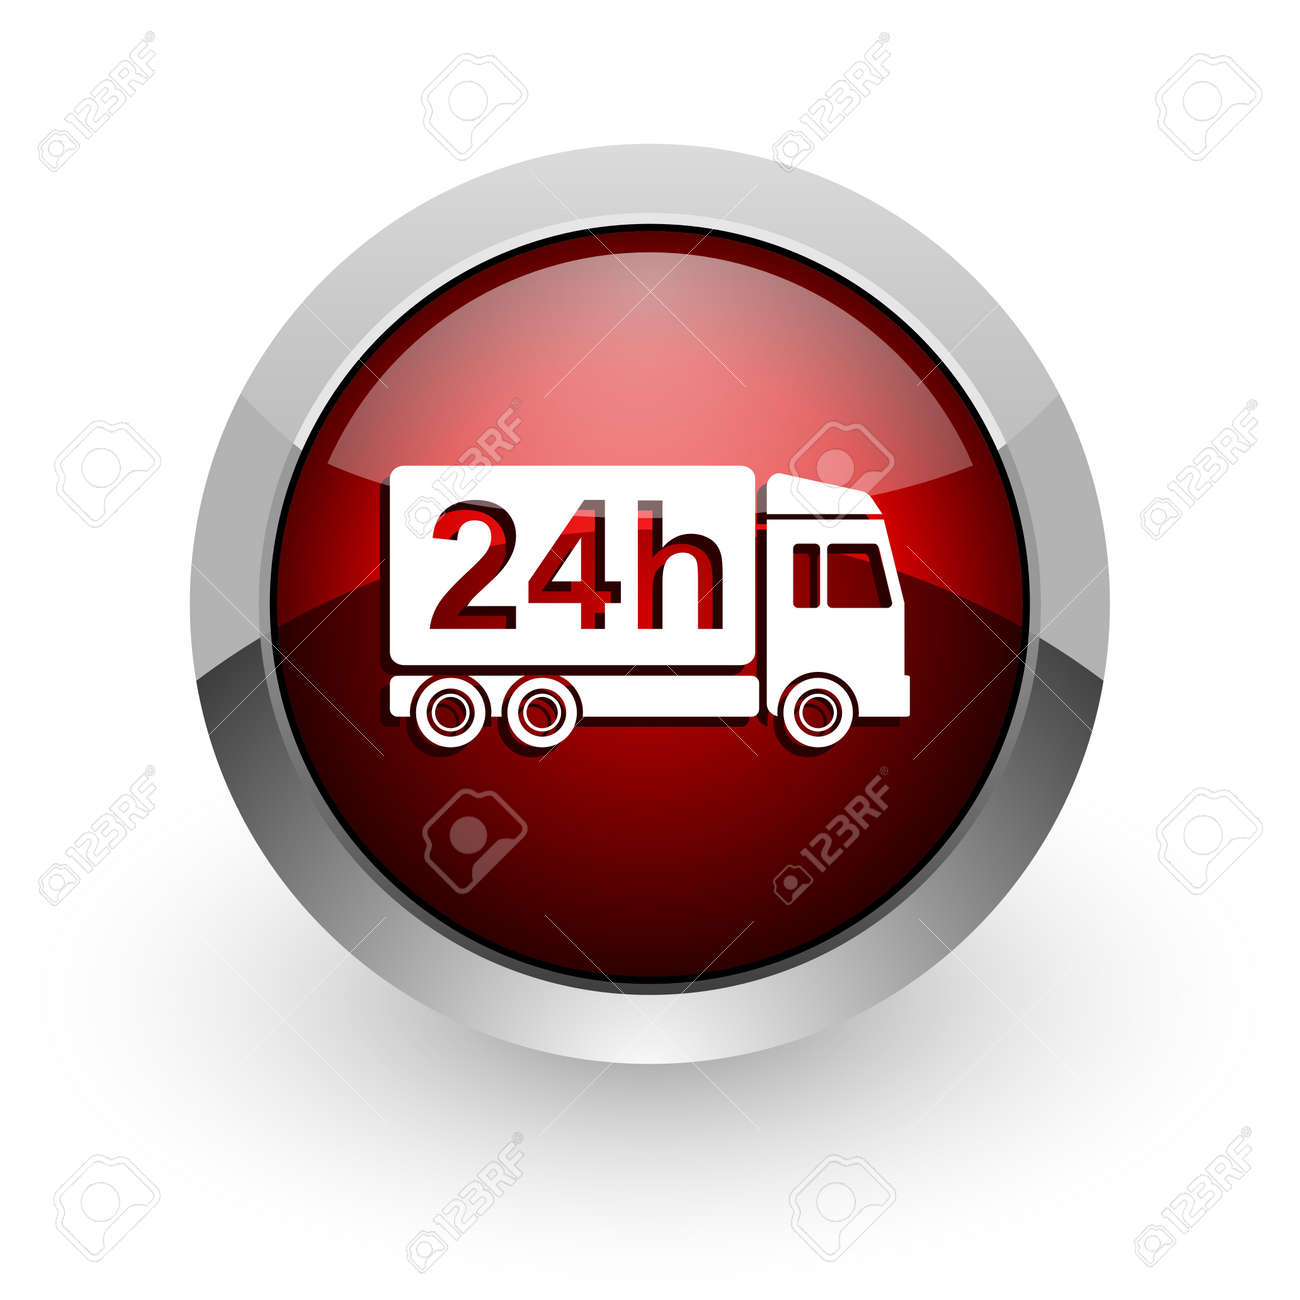 delivery 24h red circle web glossy icon Stock Photo - 18579115